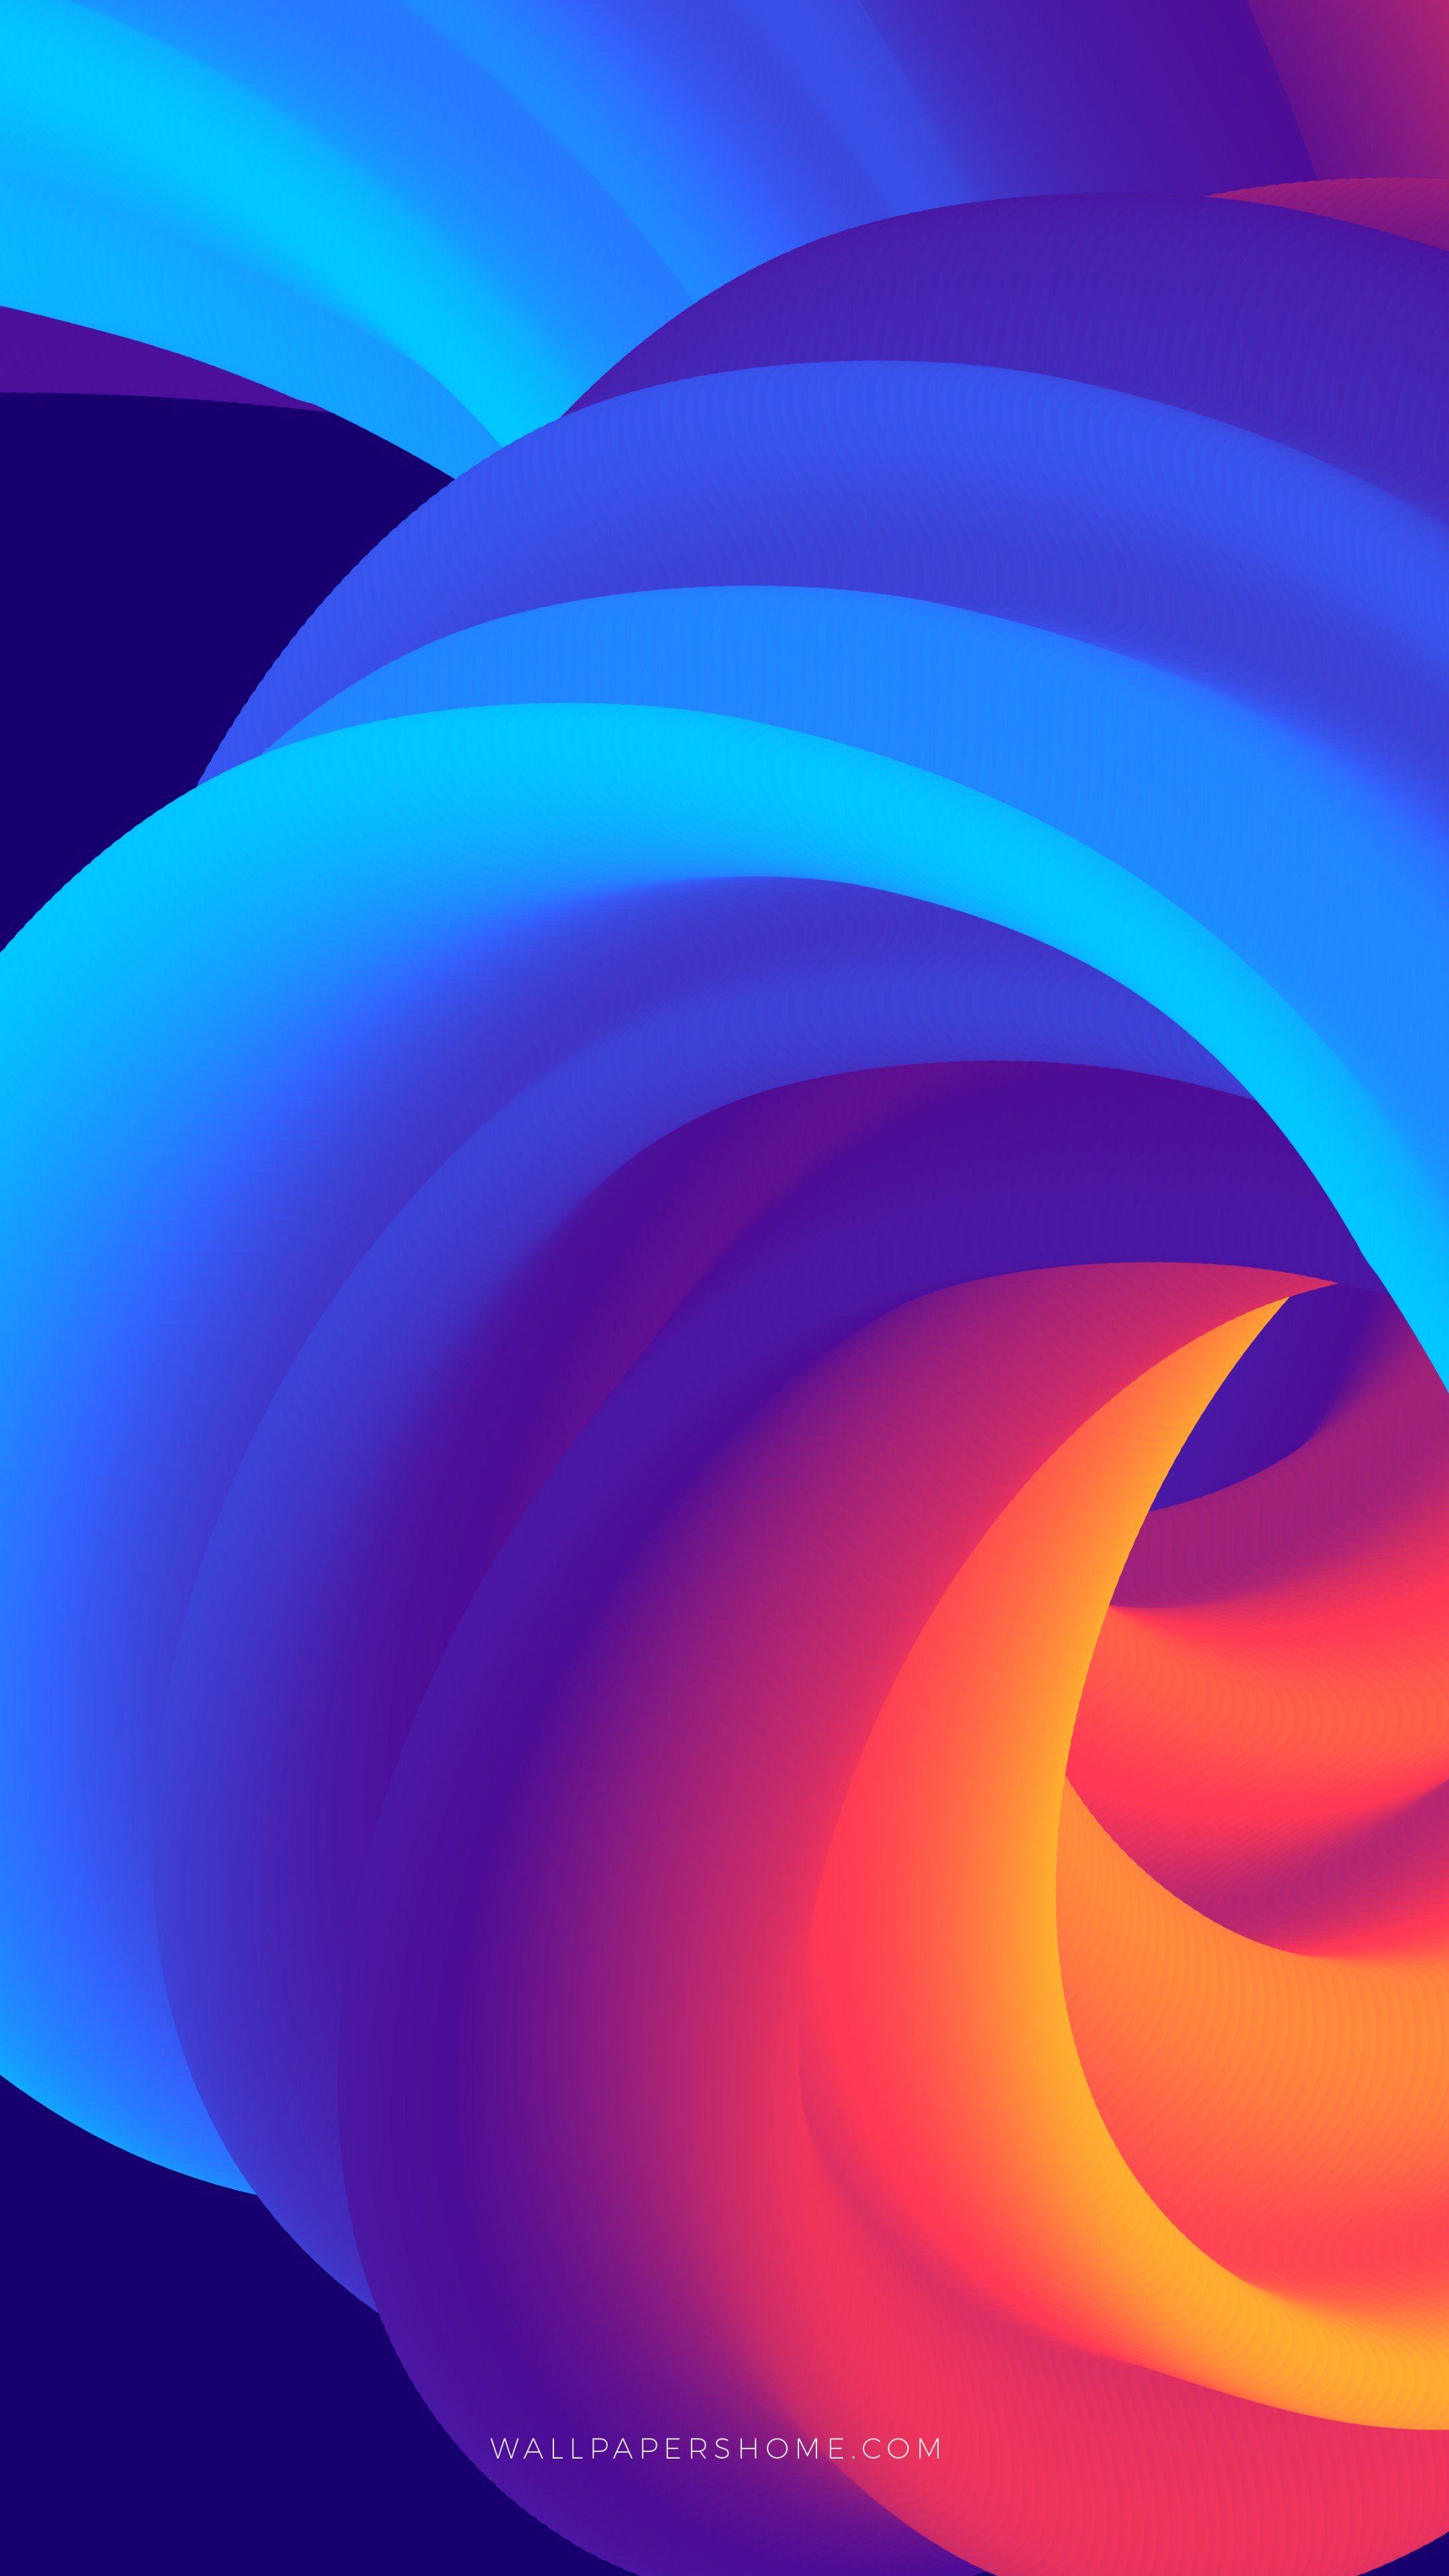 Colorful Wallpaper Hd 3d Wallpaper Abstract 3d Colorful 8k Os 21463